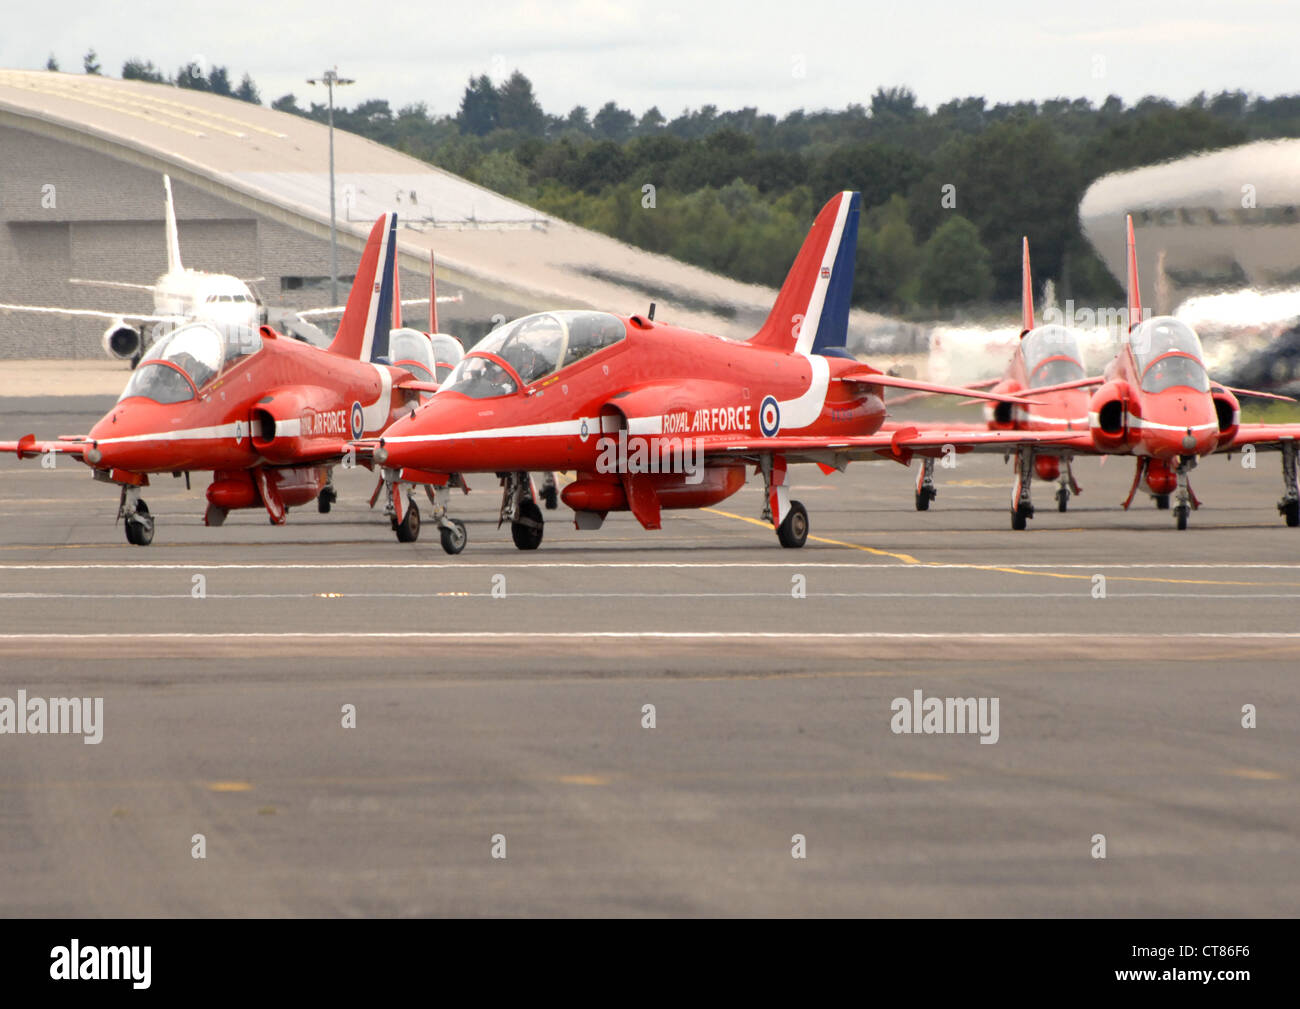 BAE Systems Hawk T1s of the RAF Red Arrows display team taxiing on the runway at Farnborough. England. - Stock Image